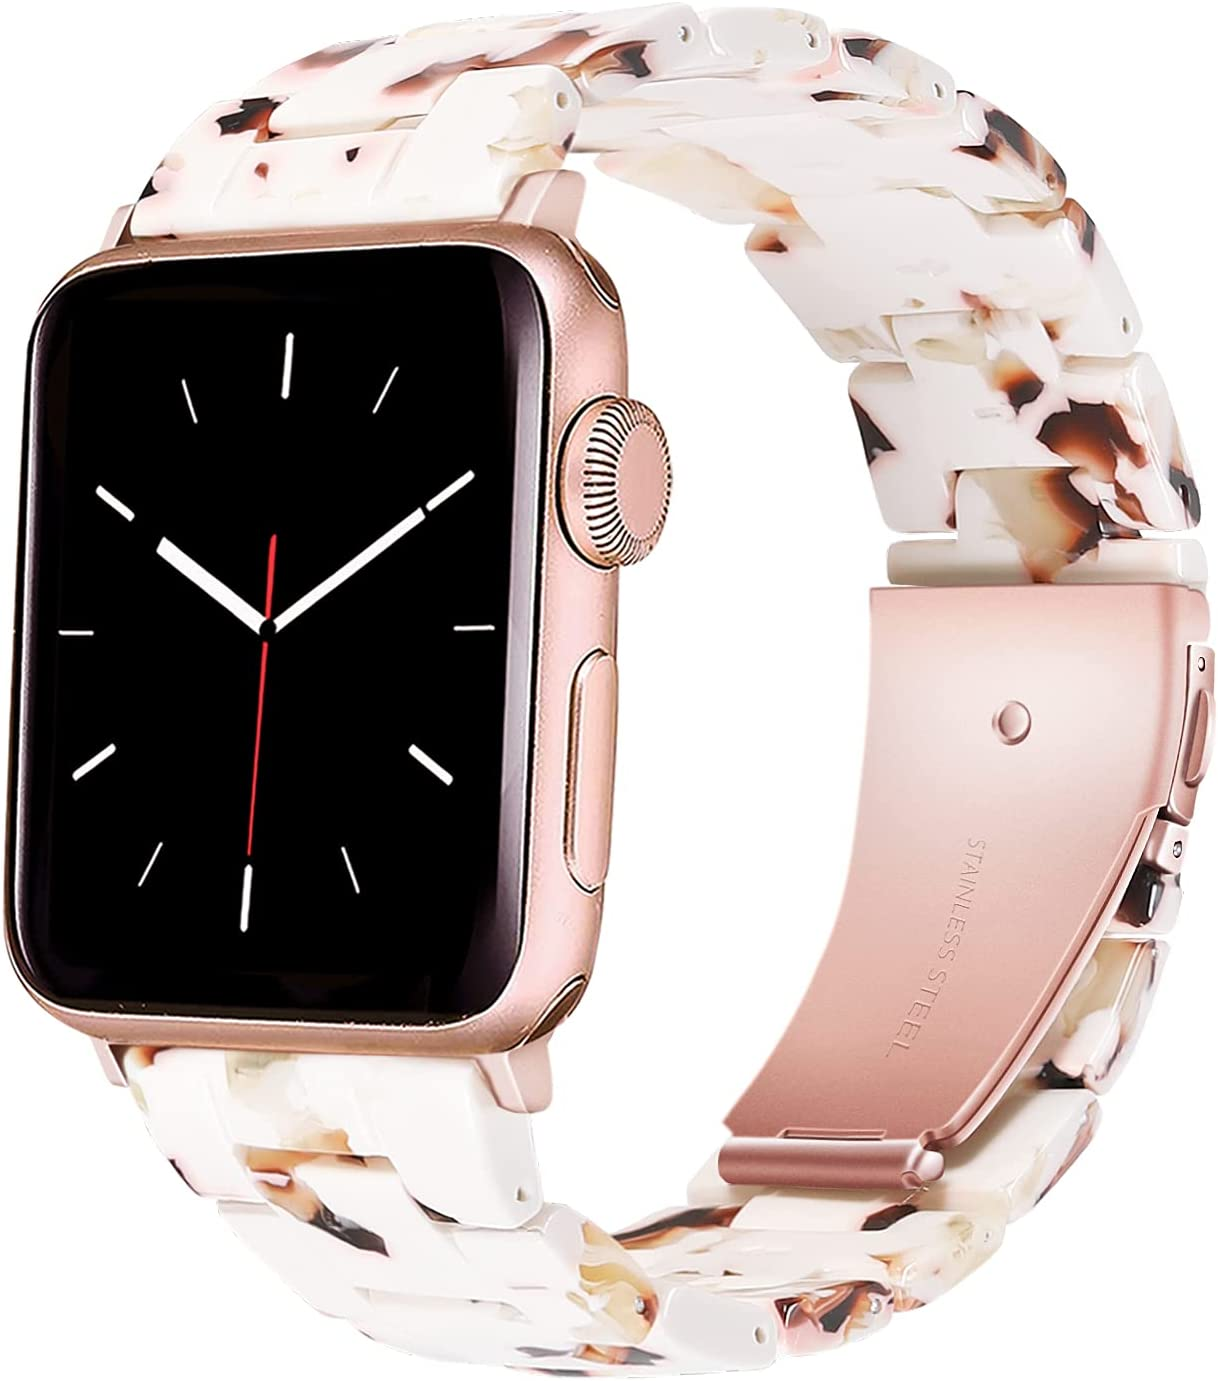 WTYUNIE Resin Band Compatible with Apple Watch Bands 38mm Women Elegant Watch Strap Girly Dressy Bracelet with Rose Gold Buckle Replacement for iWatch Band 40mm Series 6 5 4 3 2 1 SE Nougat White